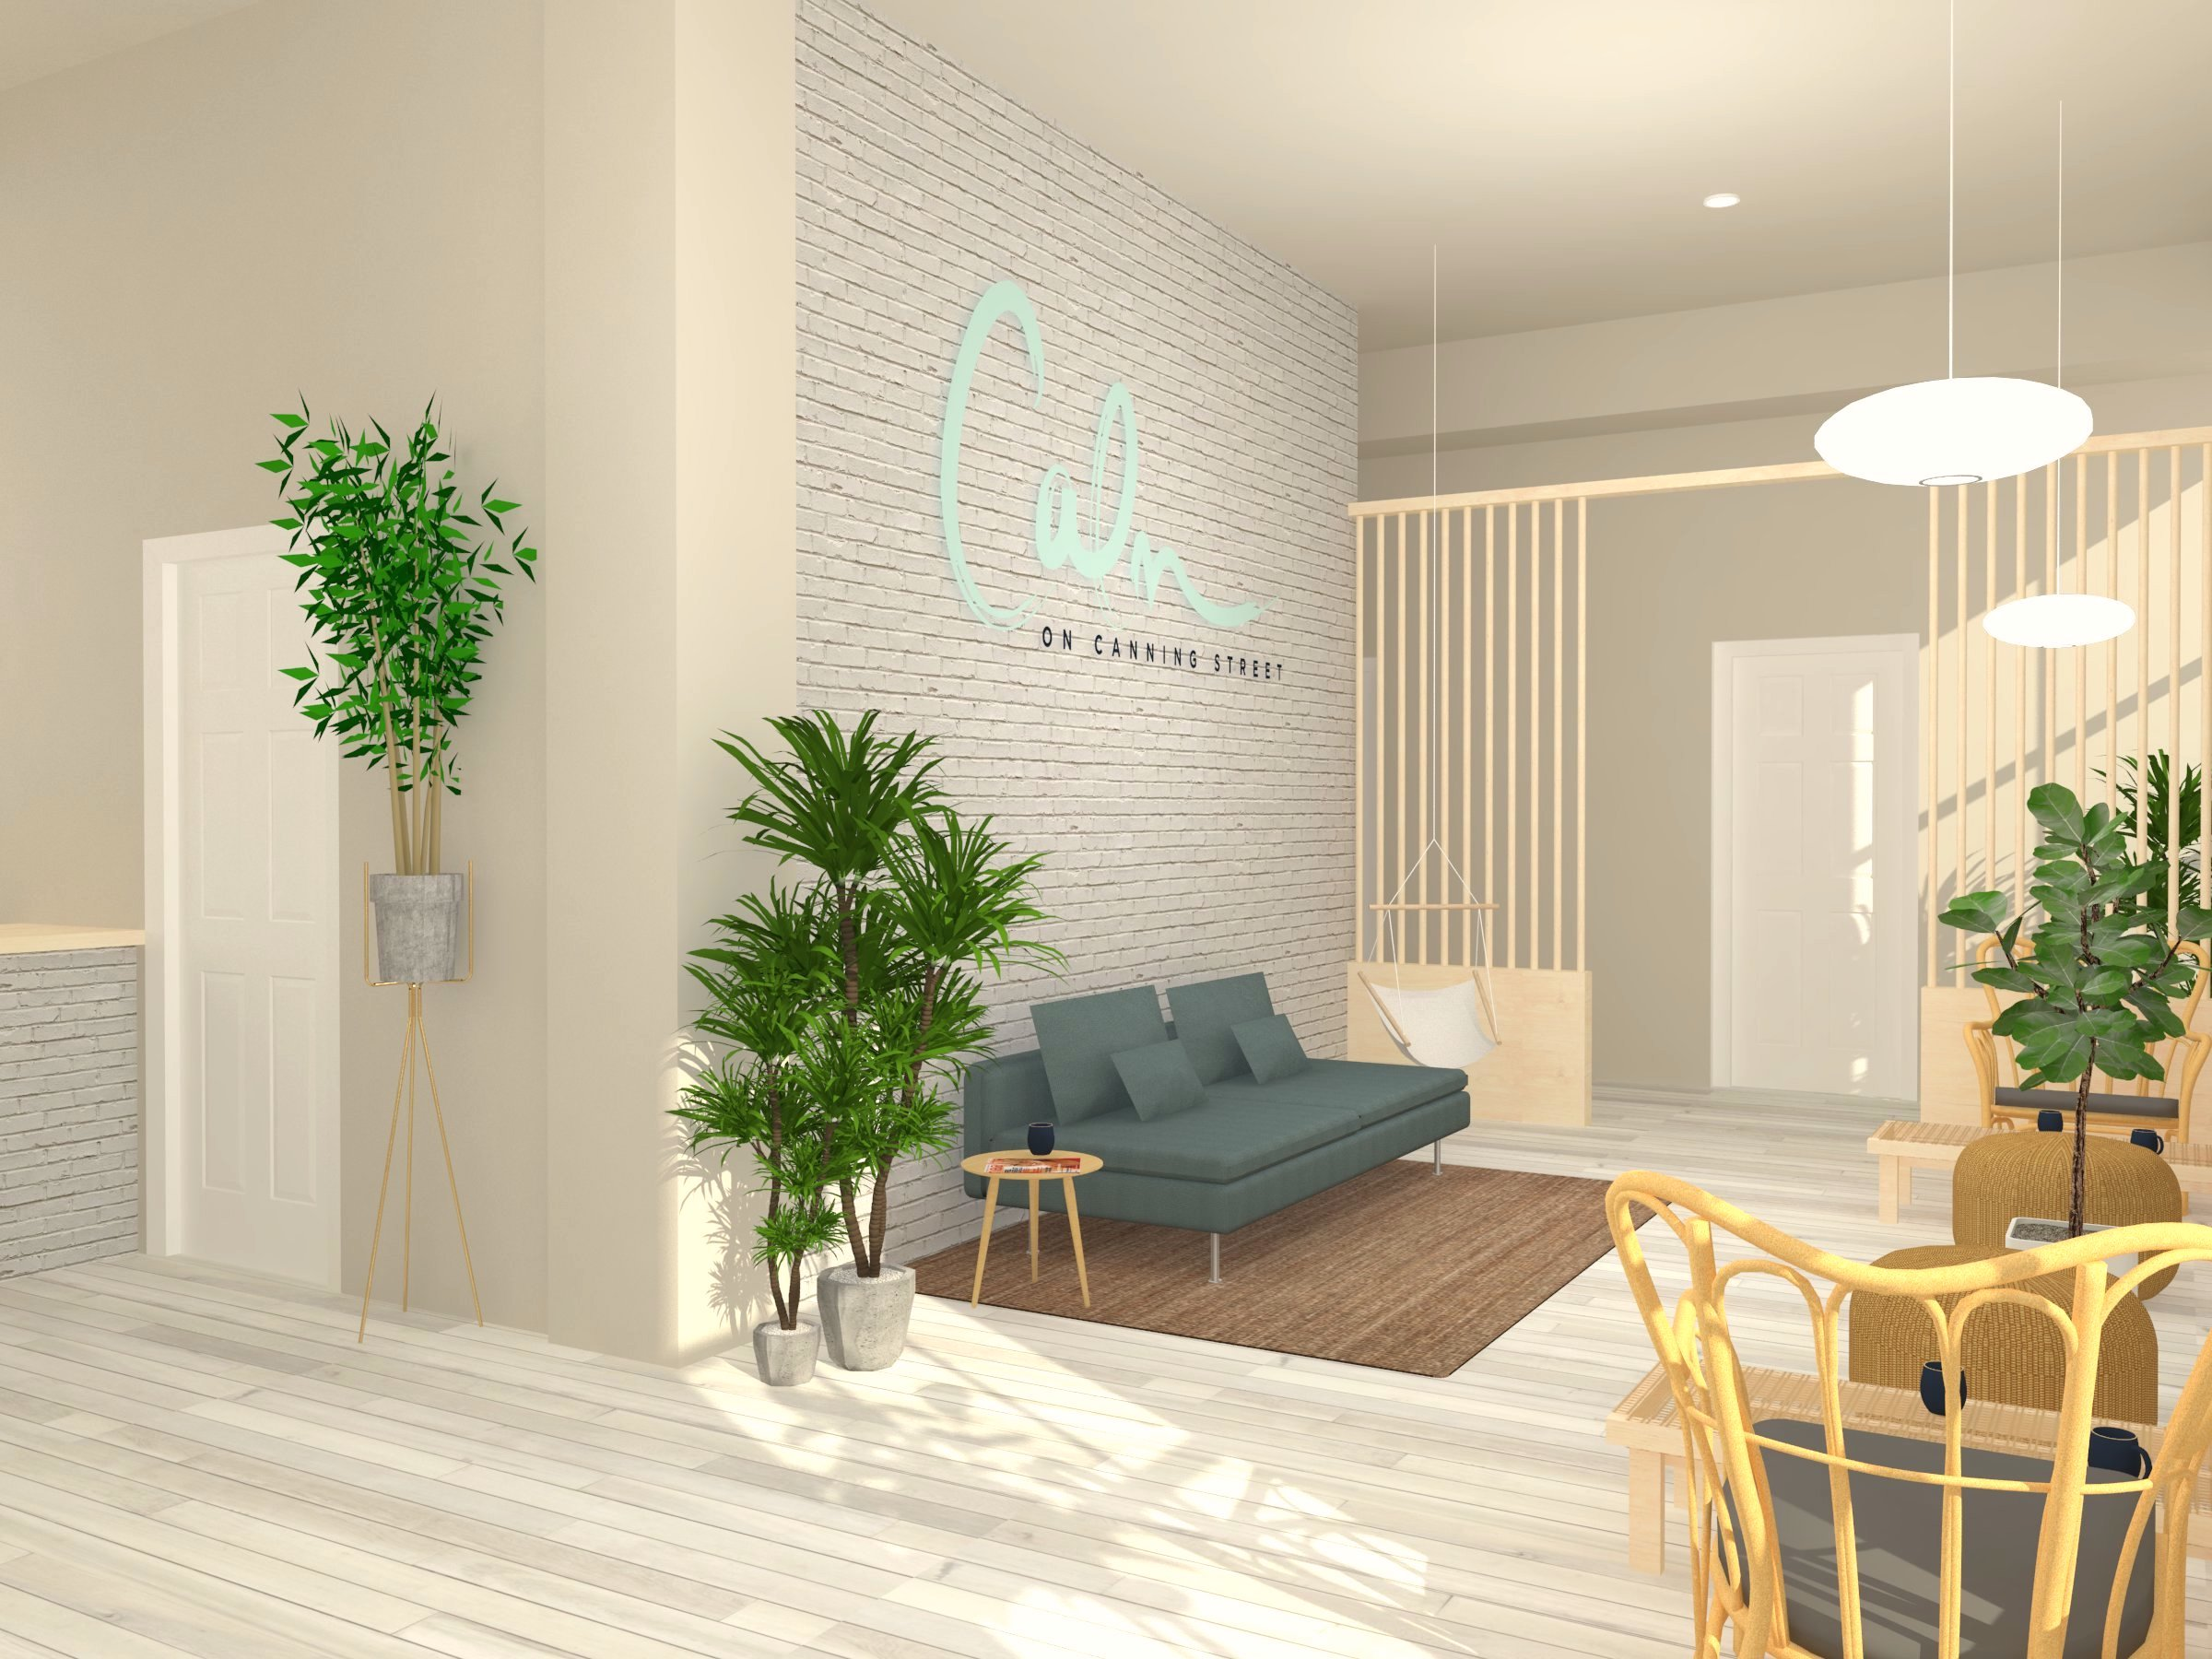 Calm_on_Canning_Street_RENDERS_01